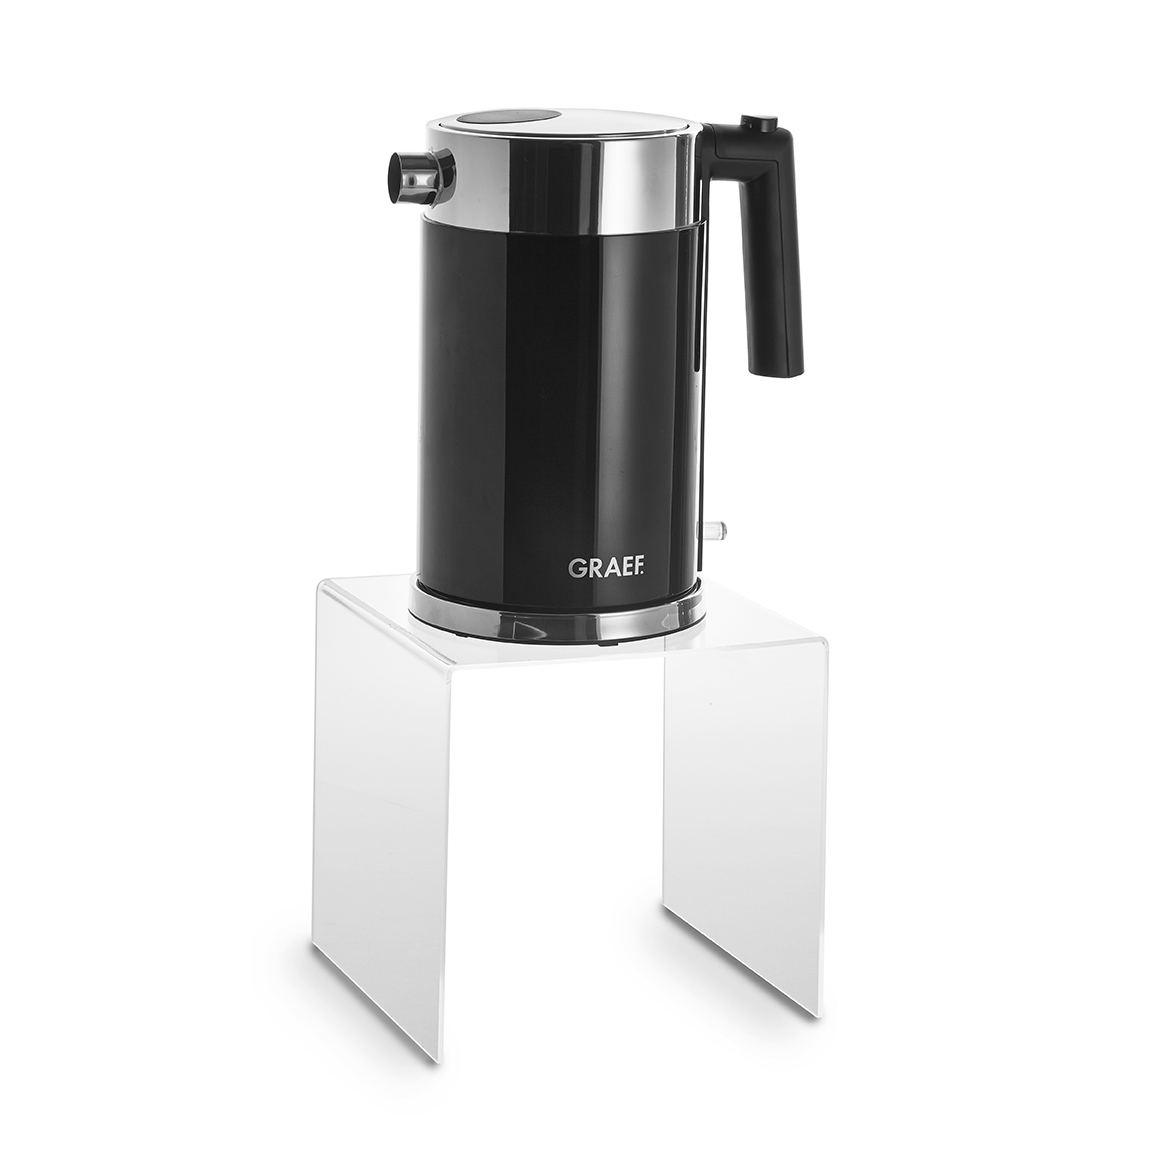 appliance kettle packshot photography clipping path cut out product photography studio lighting professional creative product.jpg